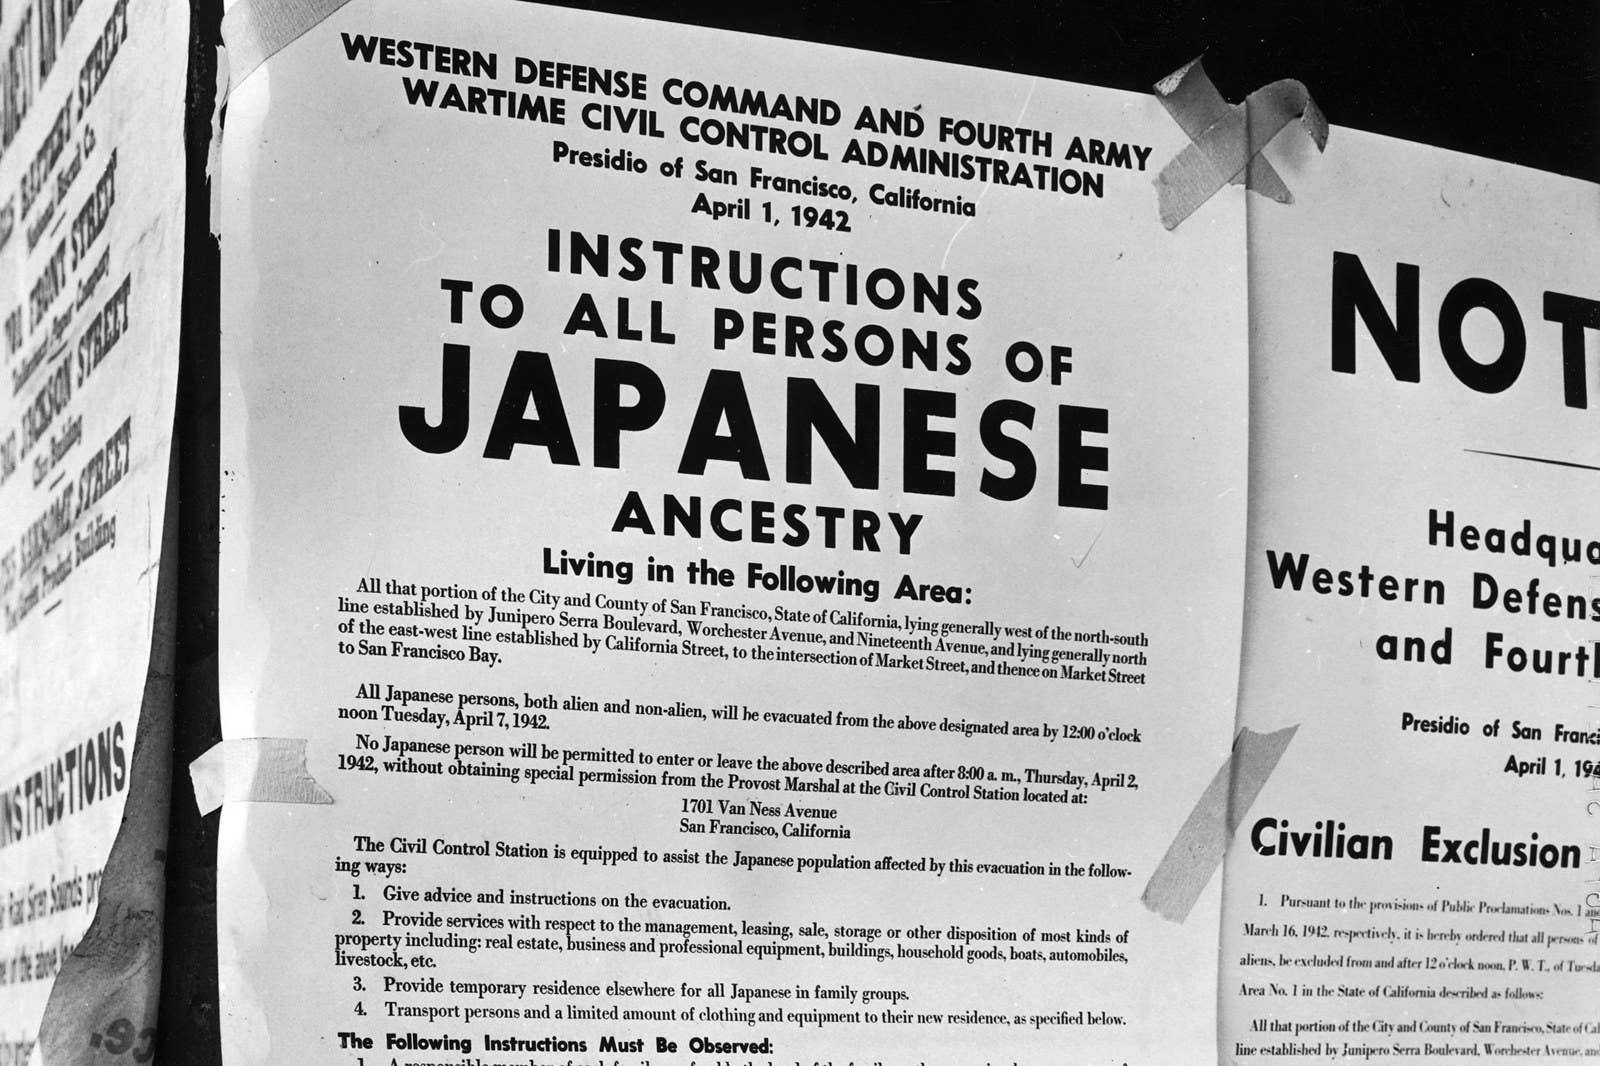 Posted notice informing people of Japanese ancestry of imminent relocation rules due to fears of treason and spying during the early years of WWII.